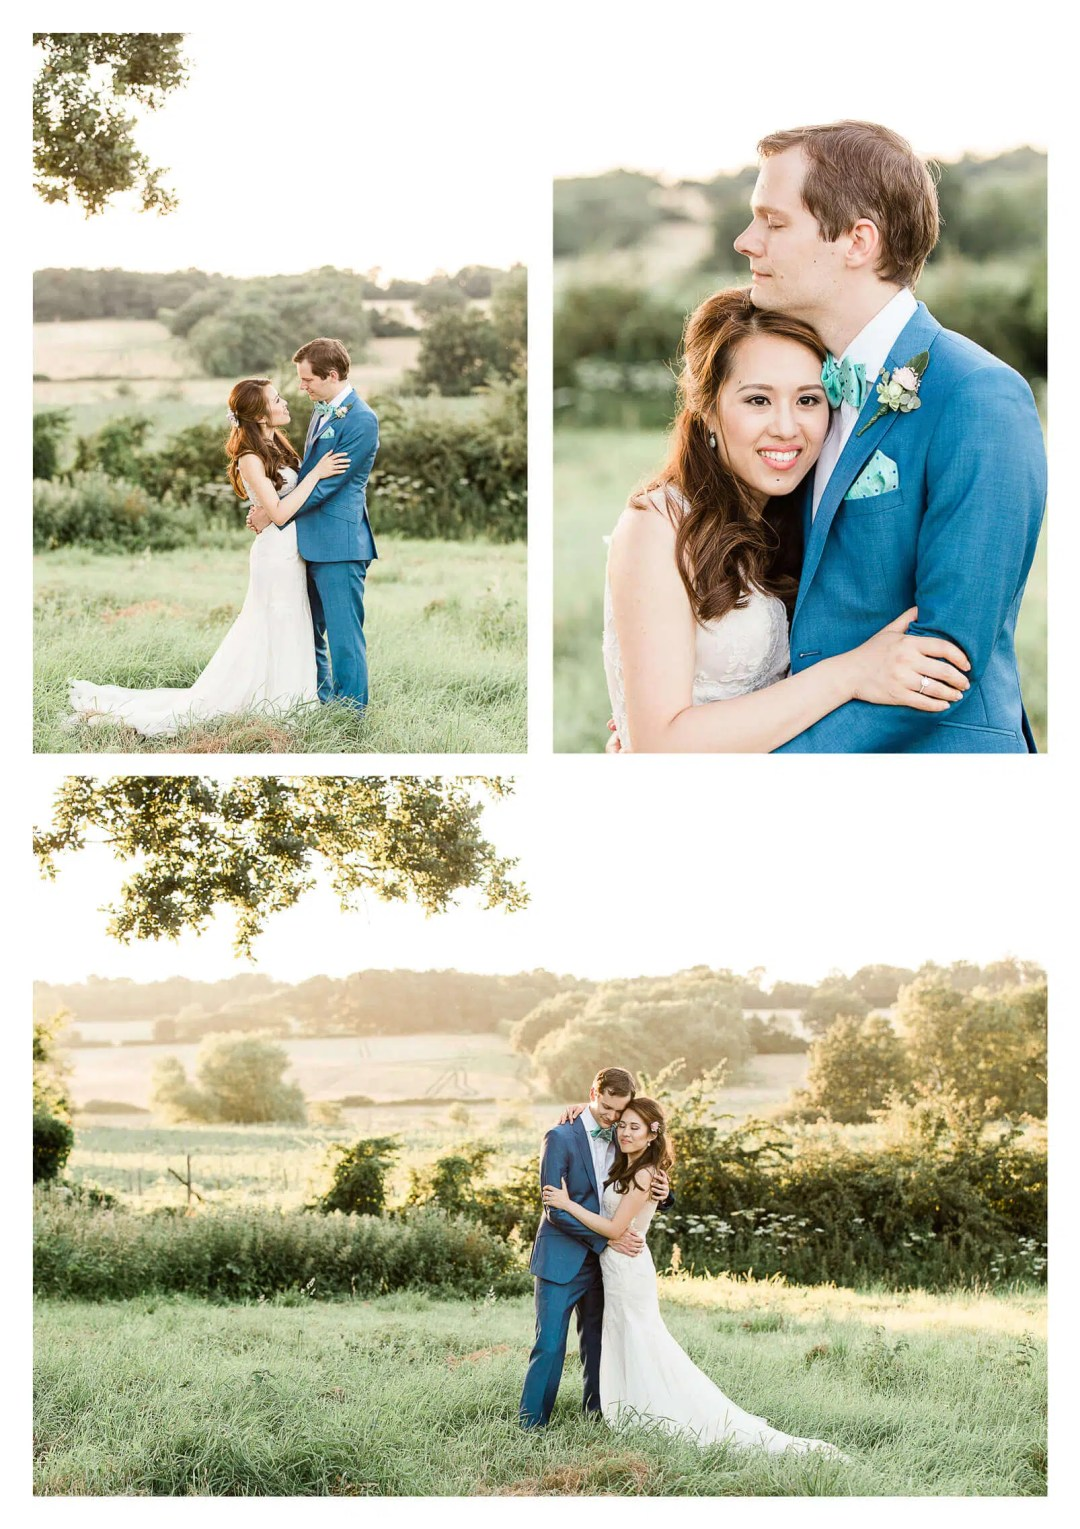 Finchcocks Oast wedding couple portraits in field at sunset | Kent wedding photographer